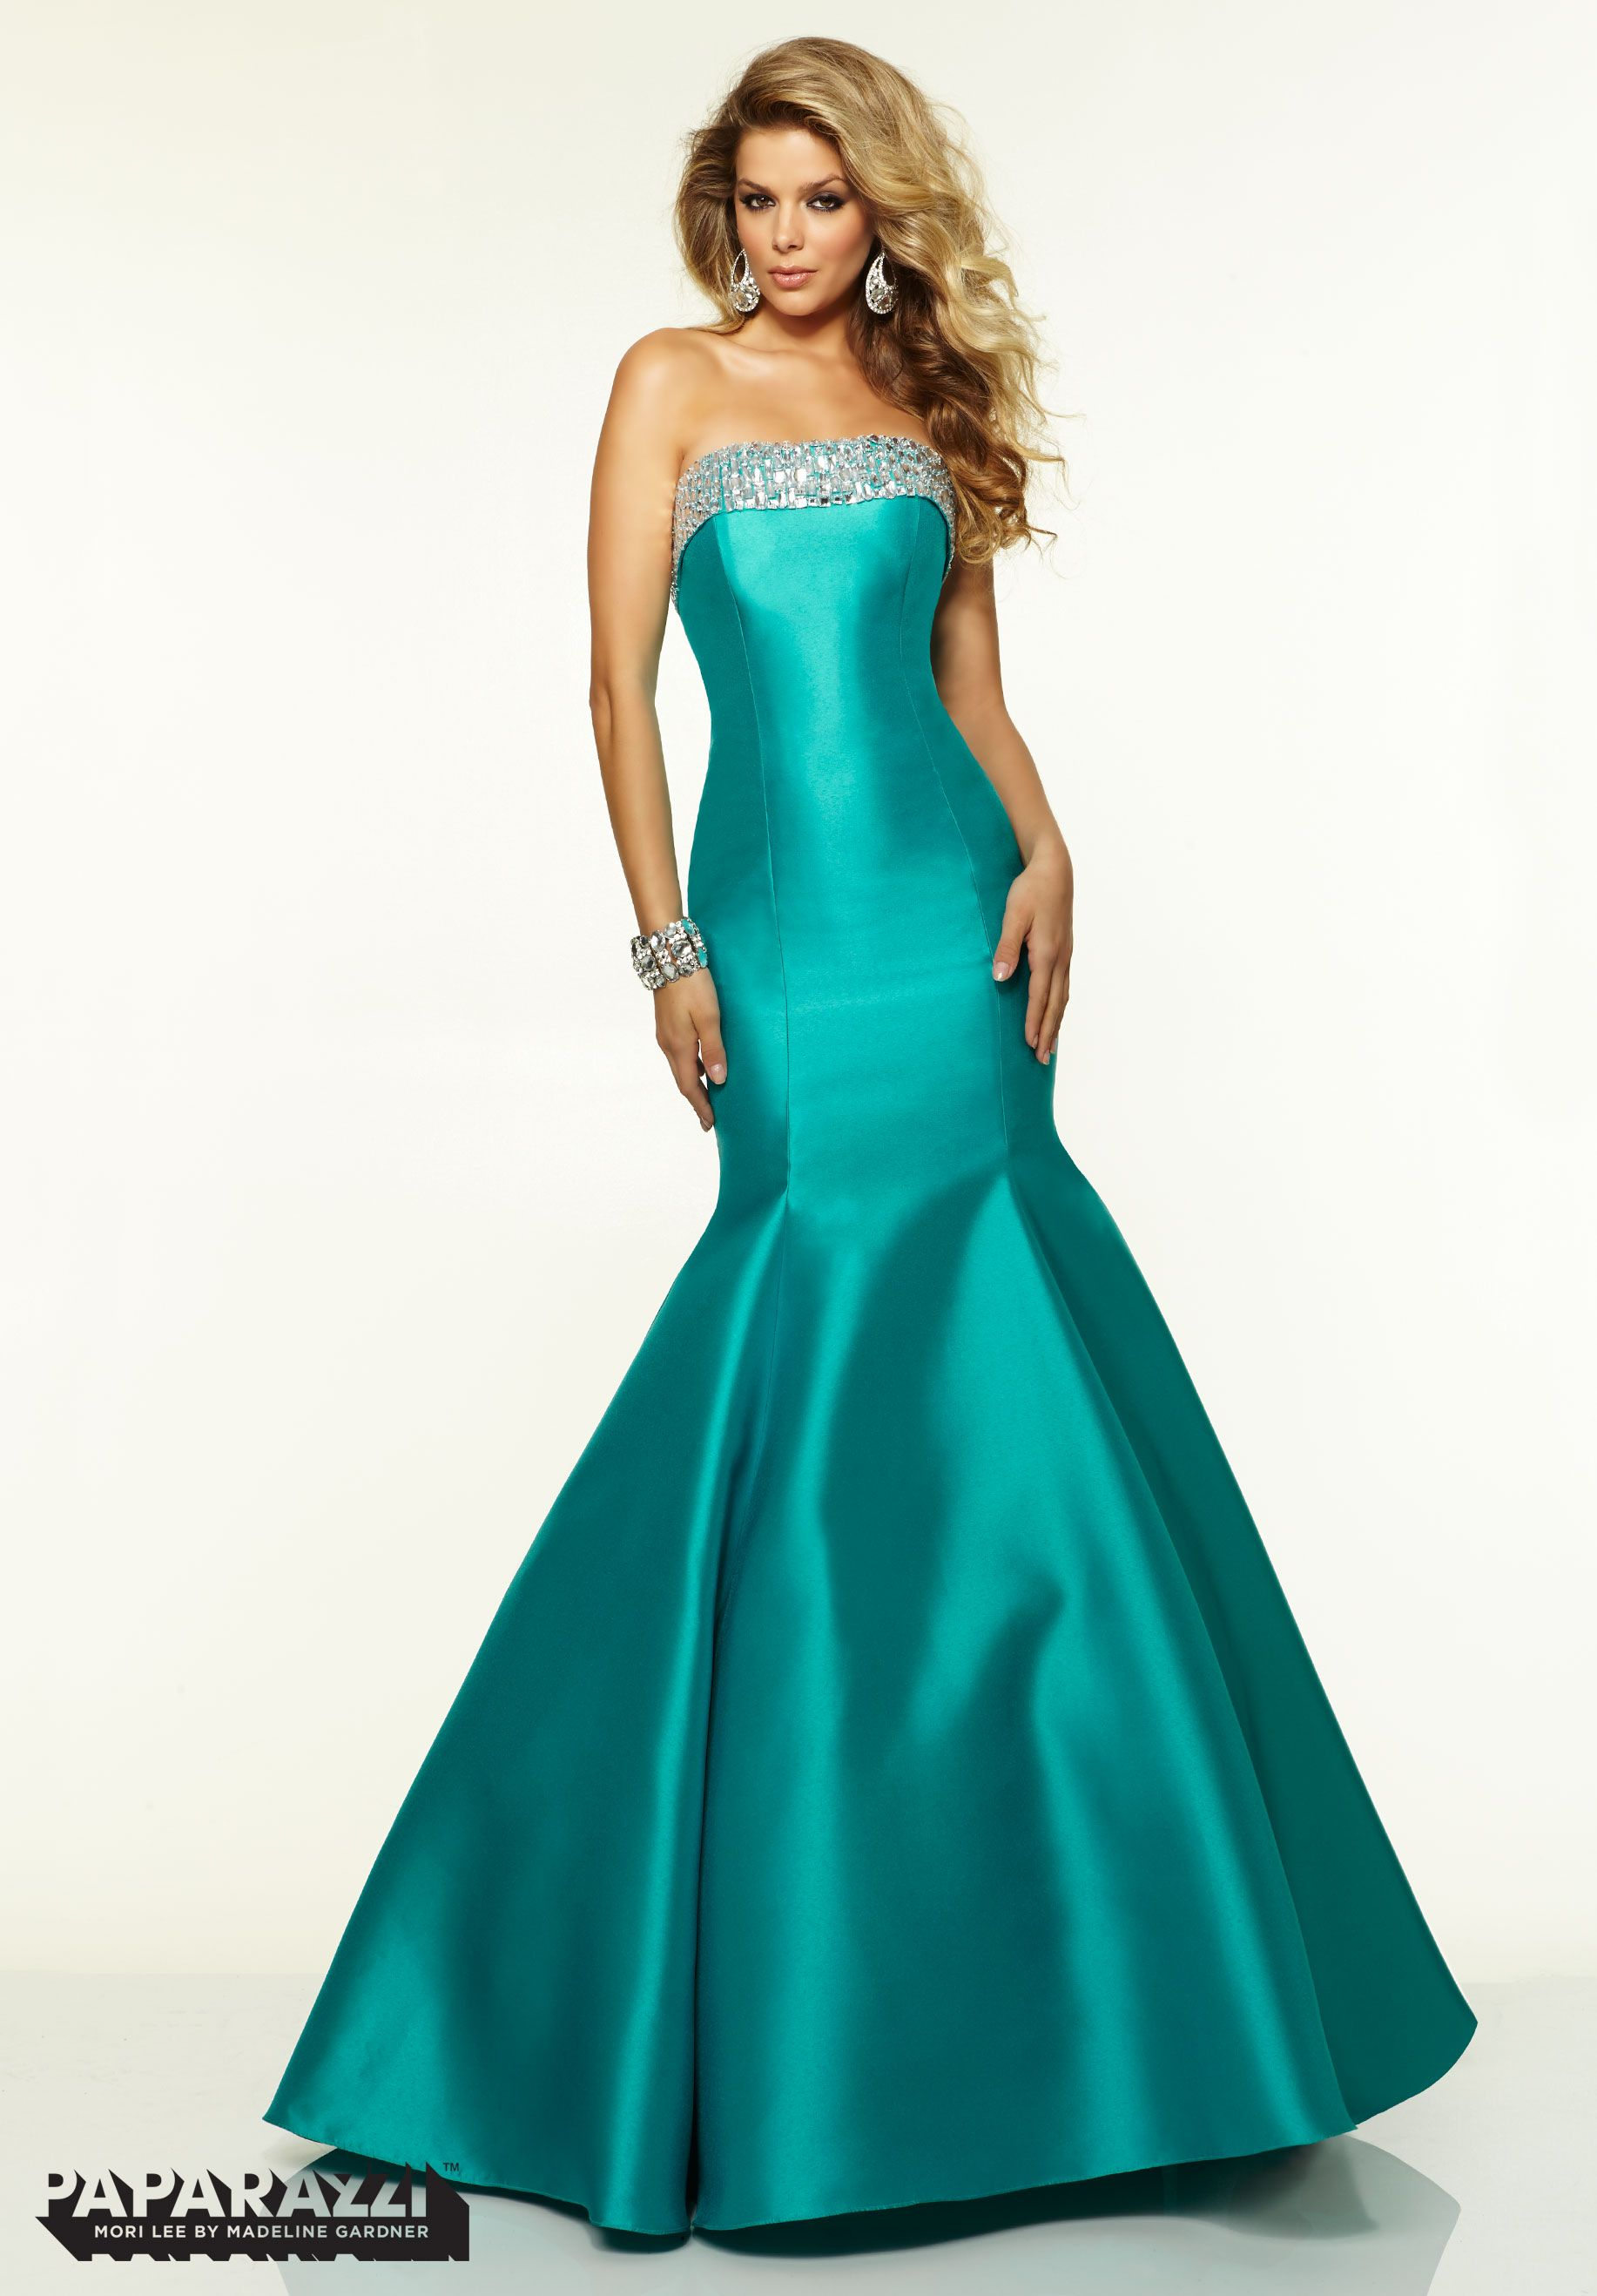 Pin by Ofelia Galvez on Turquoise | Pinterest | Prom, Satin and Gowns